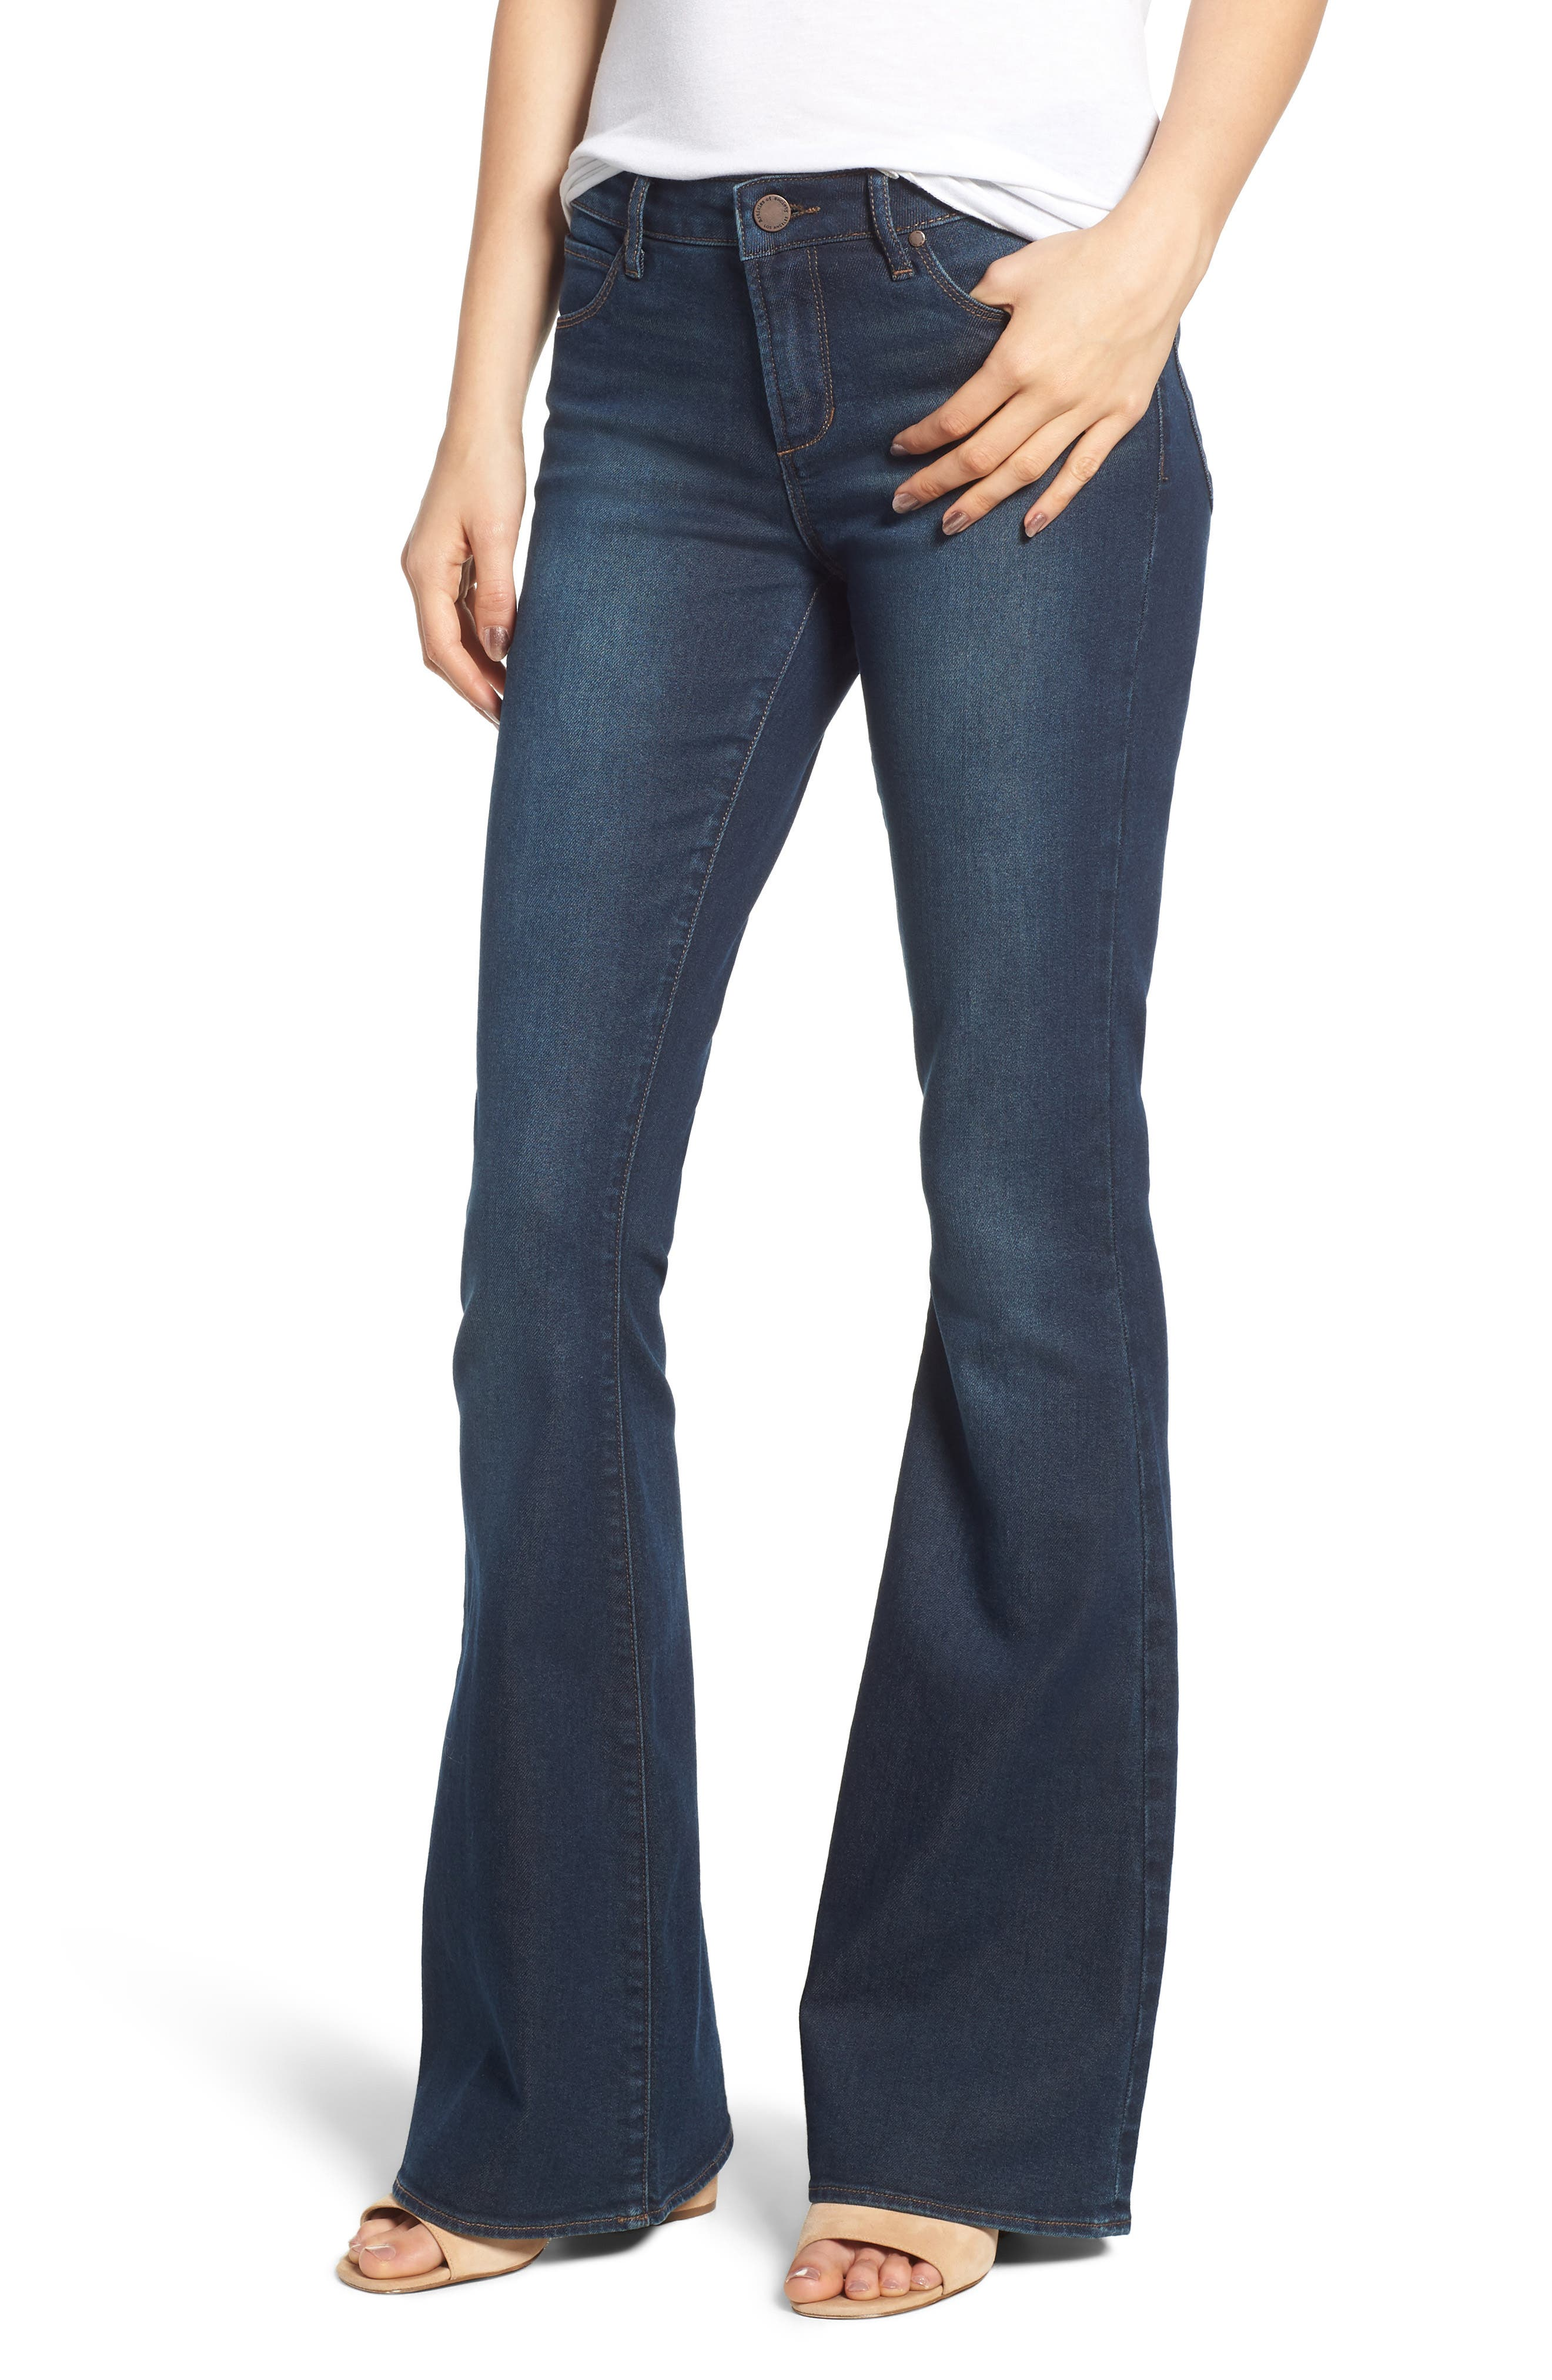 ARTICLES OF SOCIETY, Faith Flare Jeans, Main thumbnail 1, color, 467